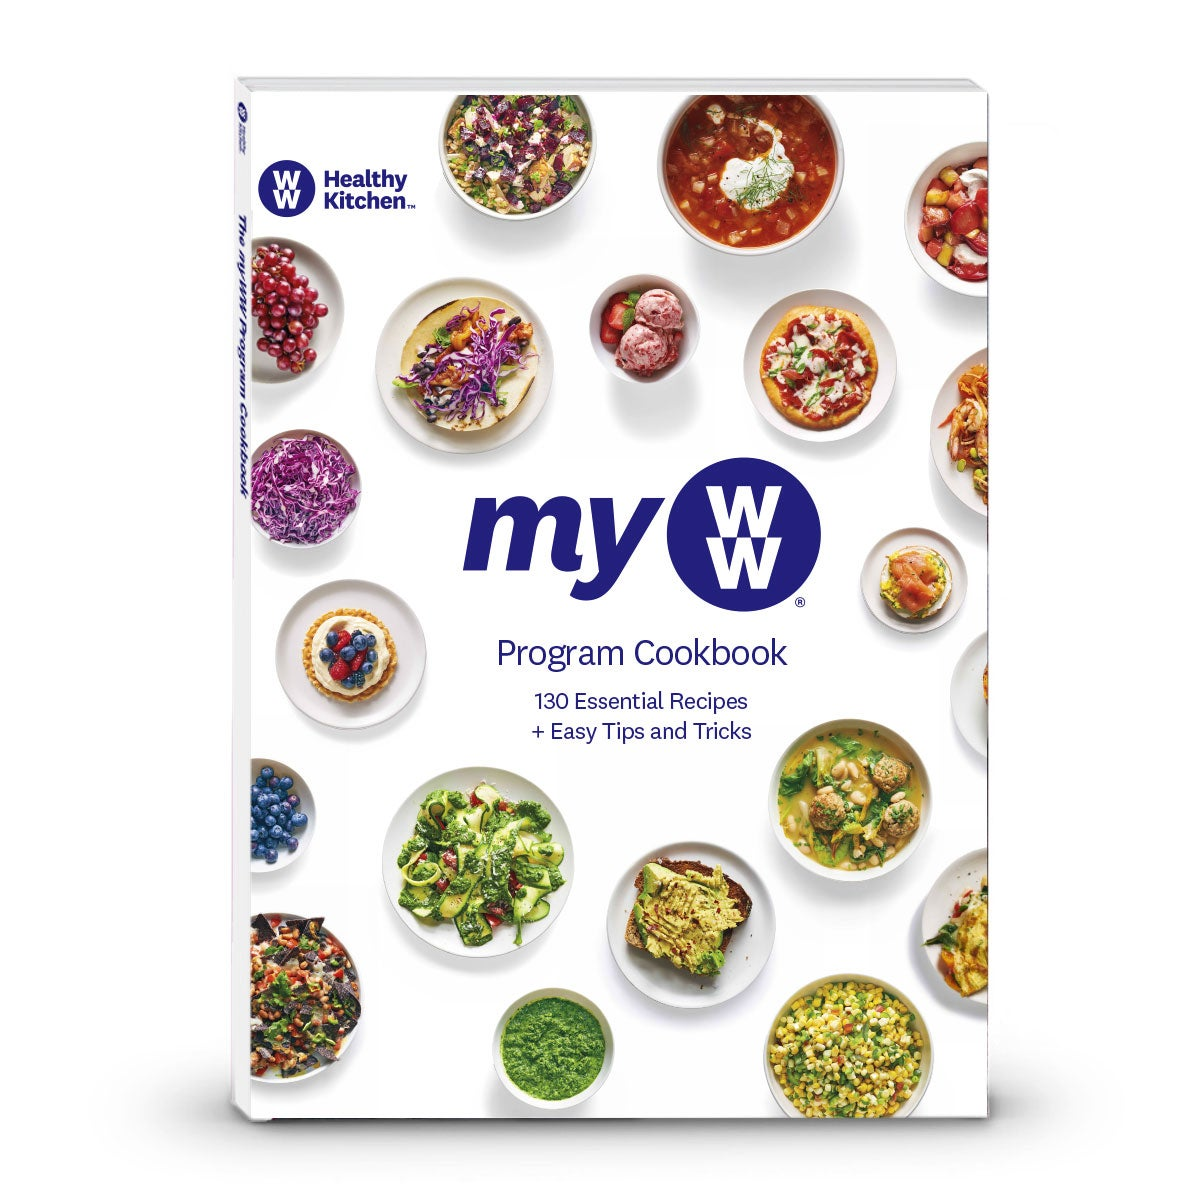 The myWW Program Cookbook